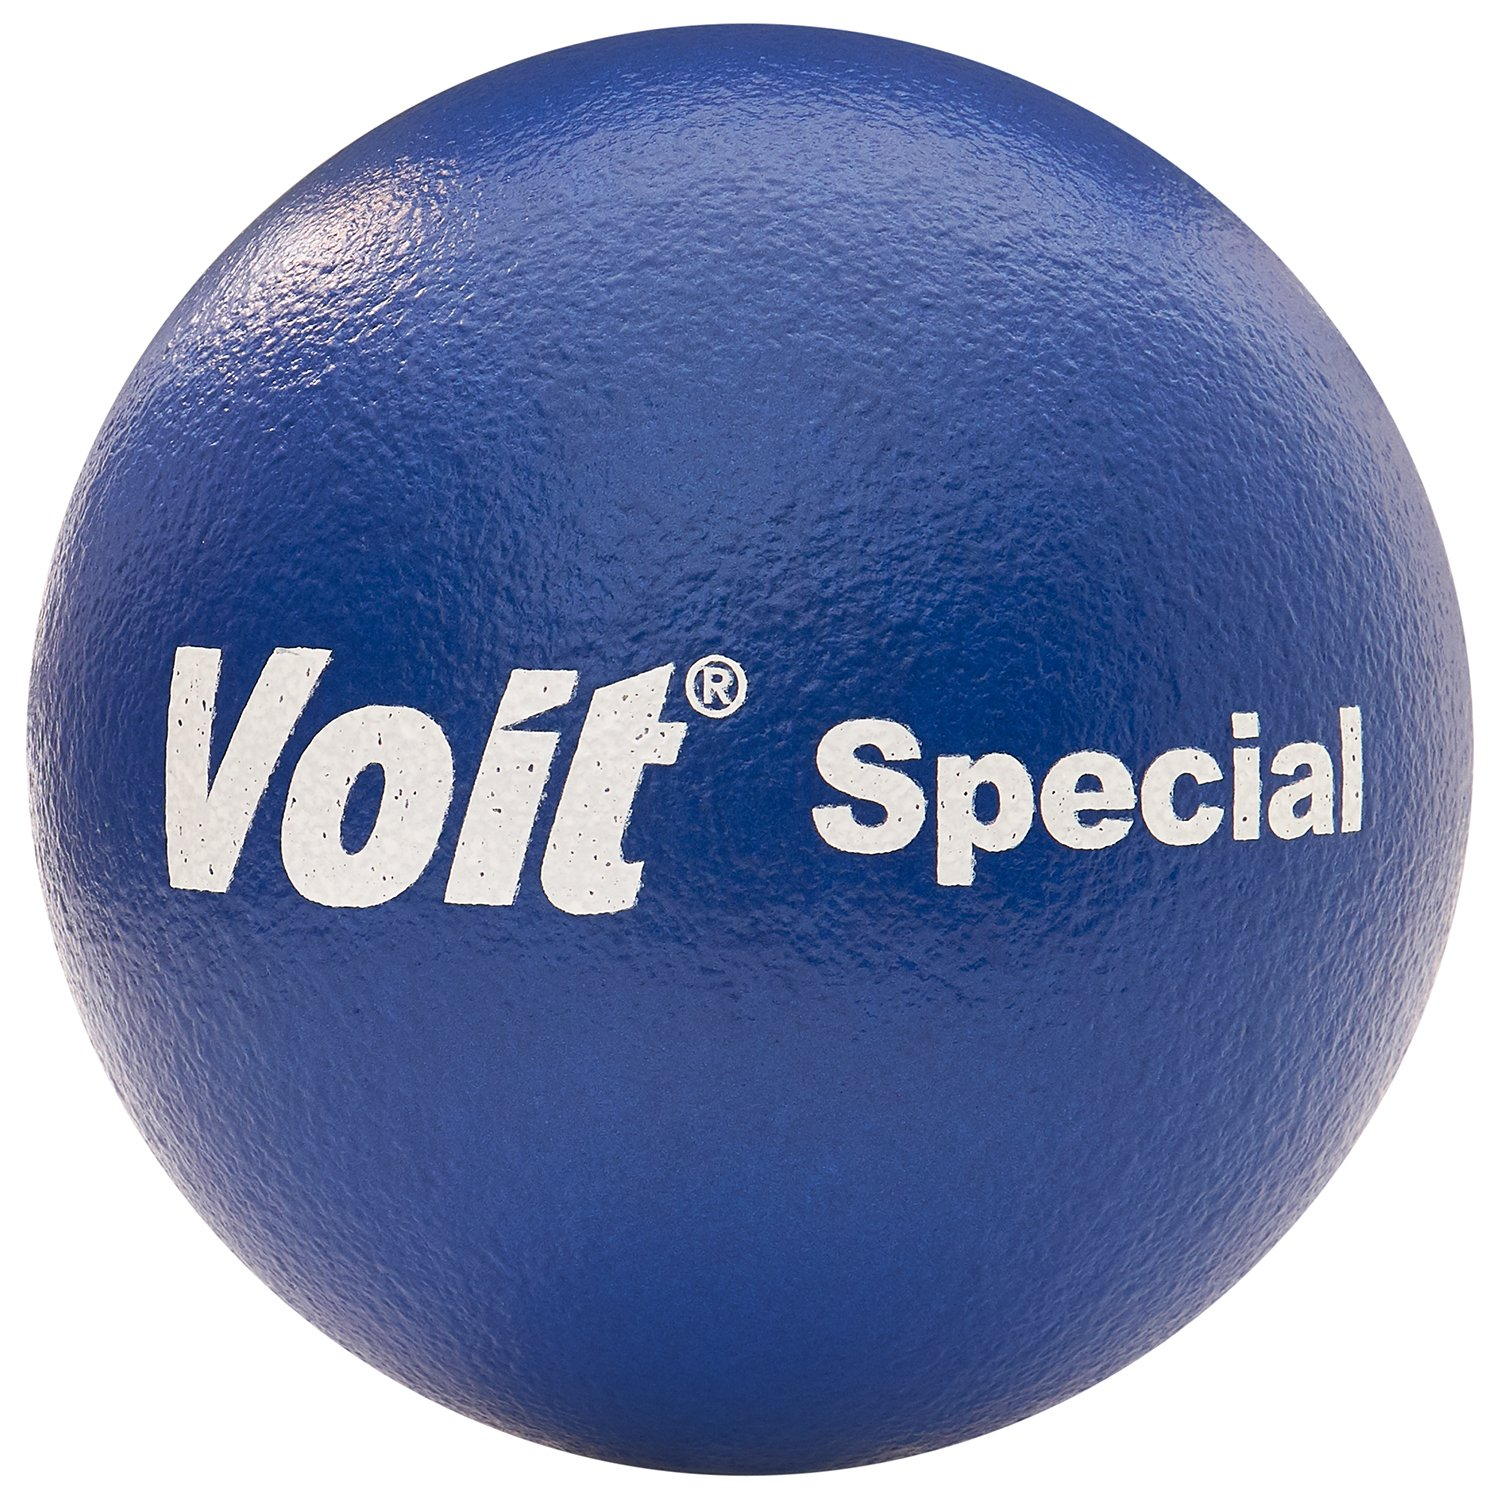 Voit Specialty Tuff Ball (8 1/4-Inch, Blue) by Voit